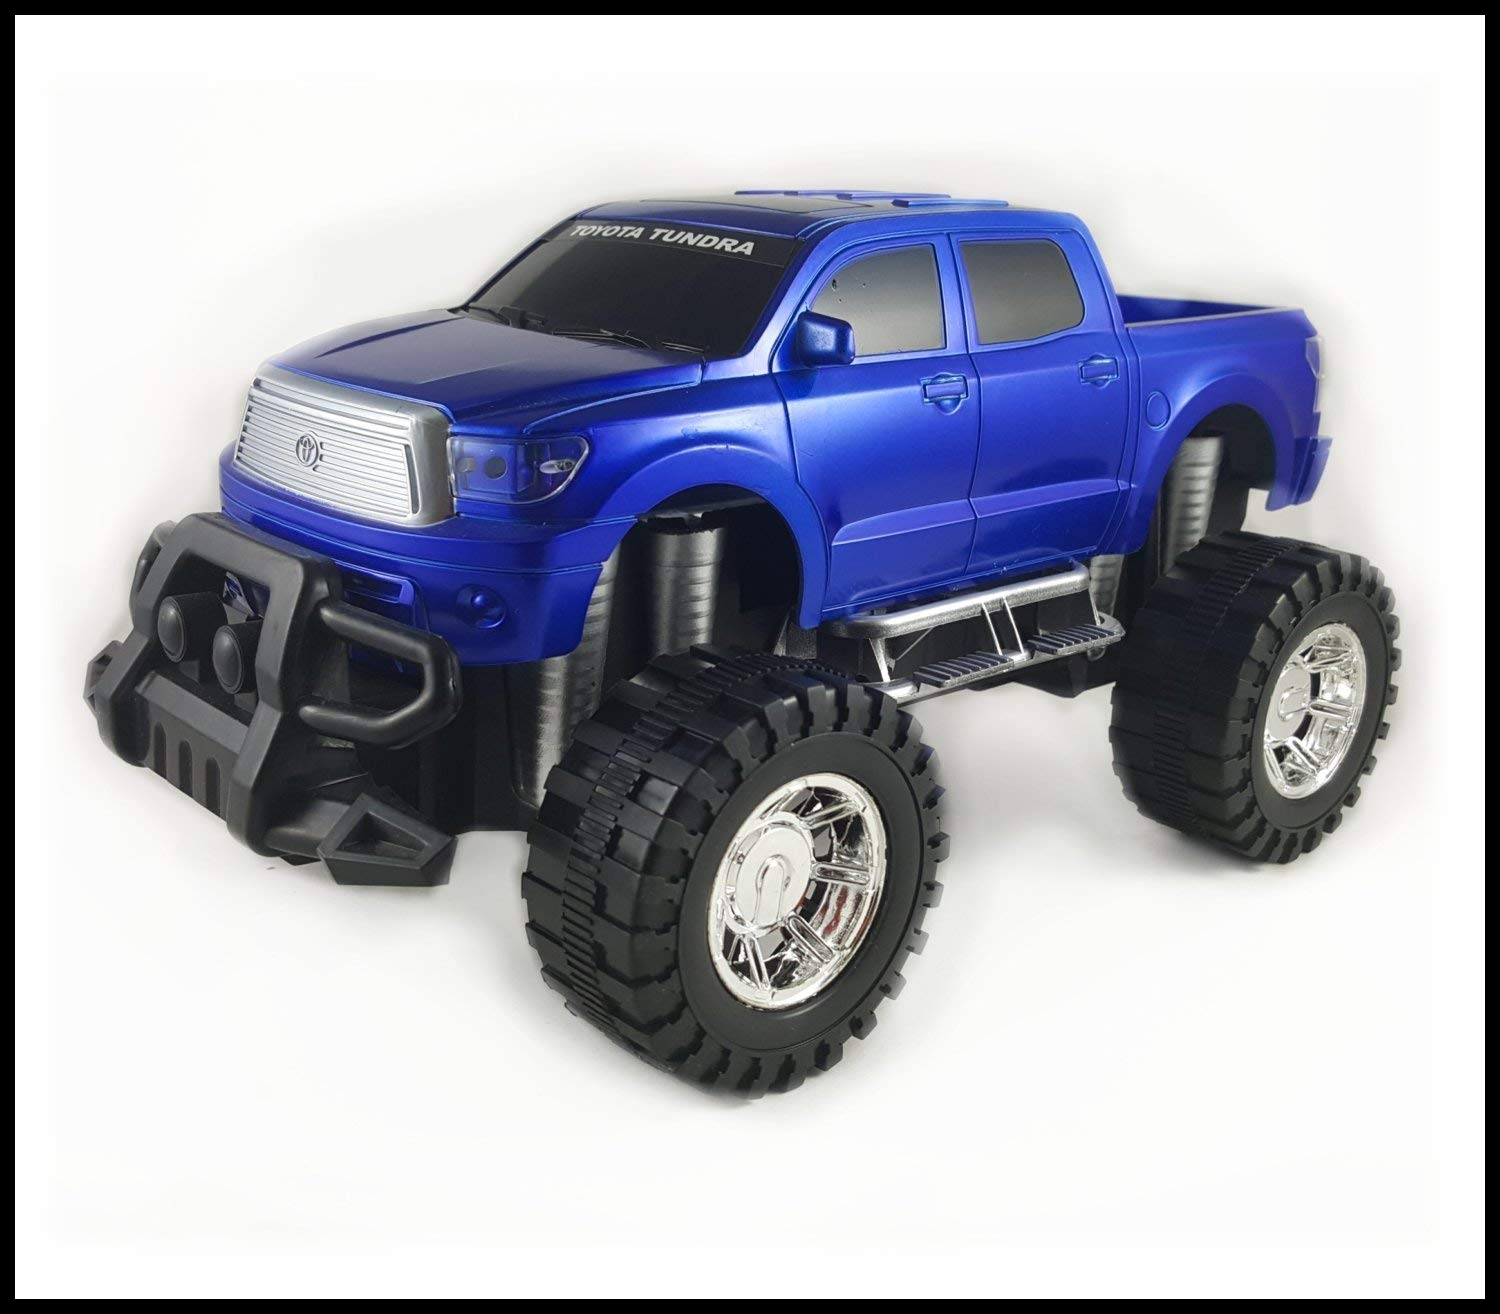 Amazon f Road Friction Powered Toyota Tundra Toy Truck Toy car with big wheels Blue Toys & Games